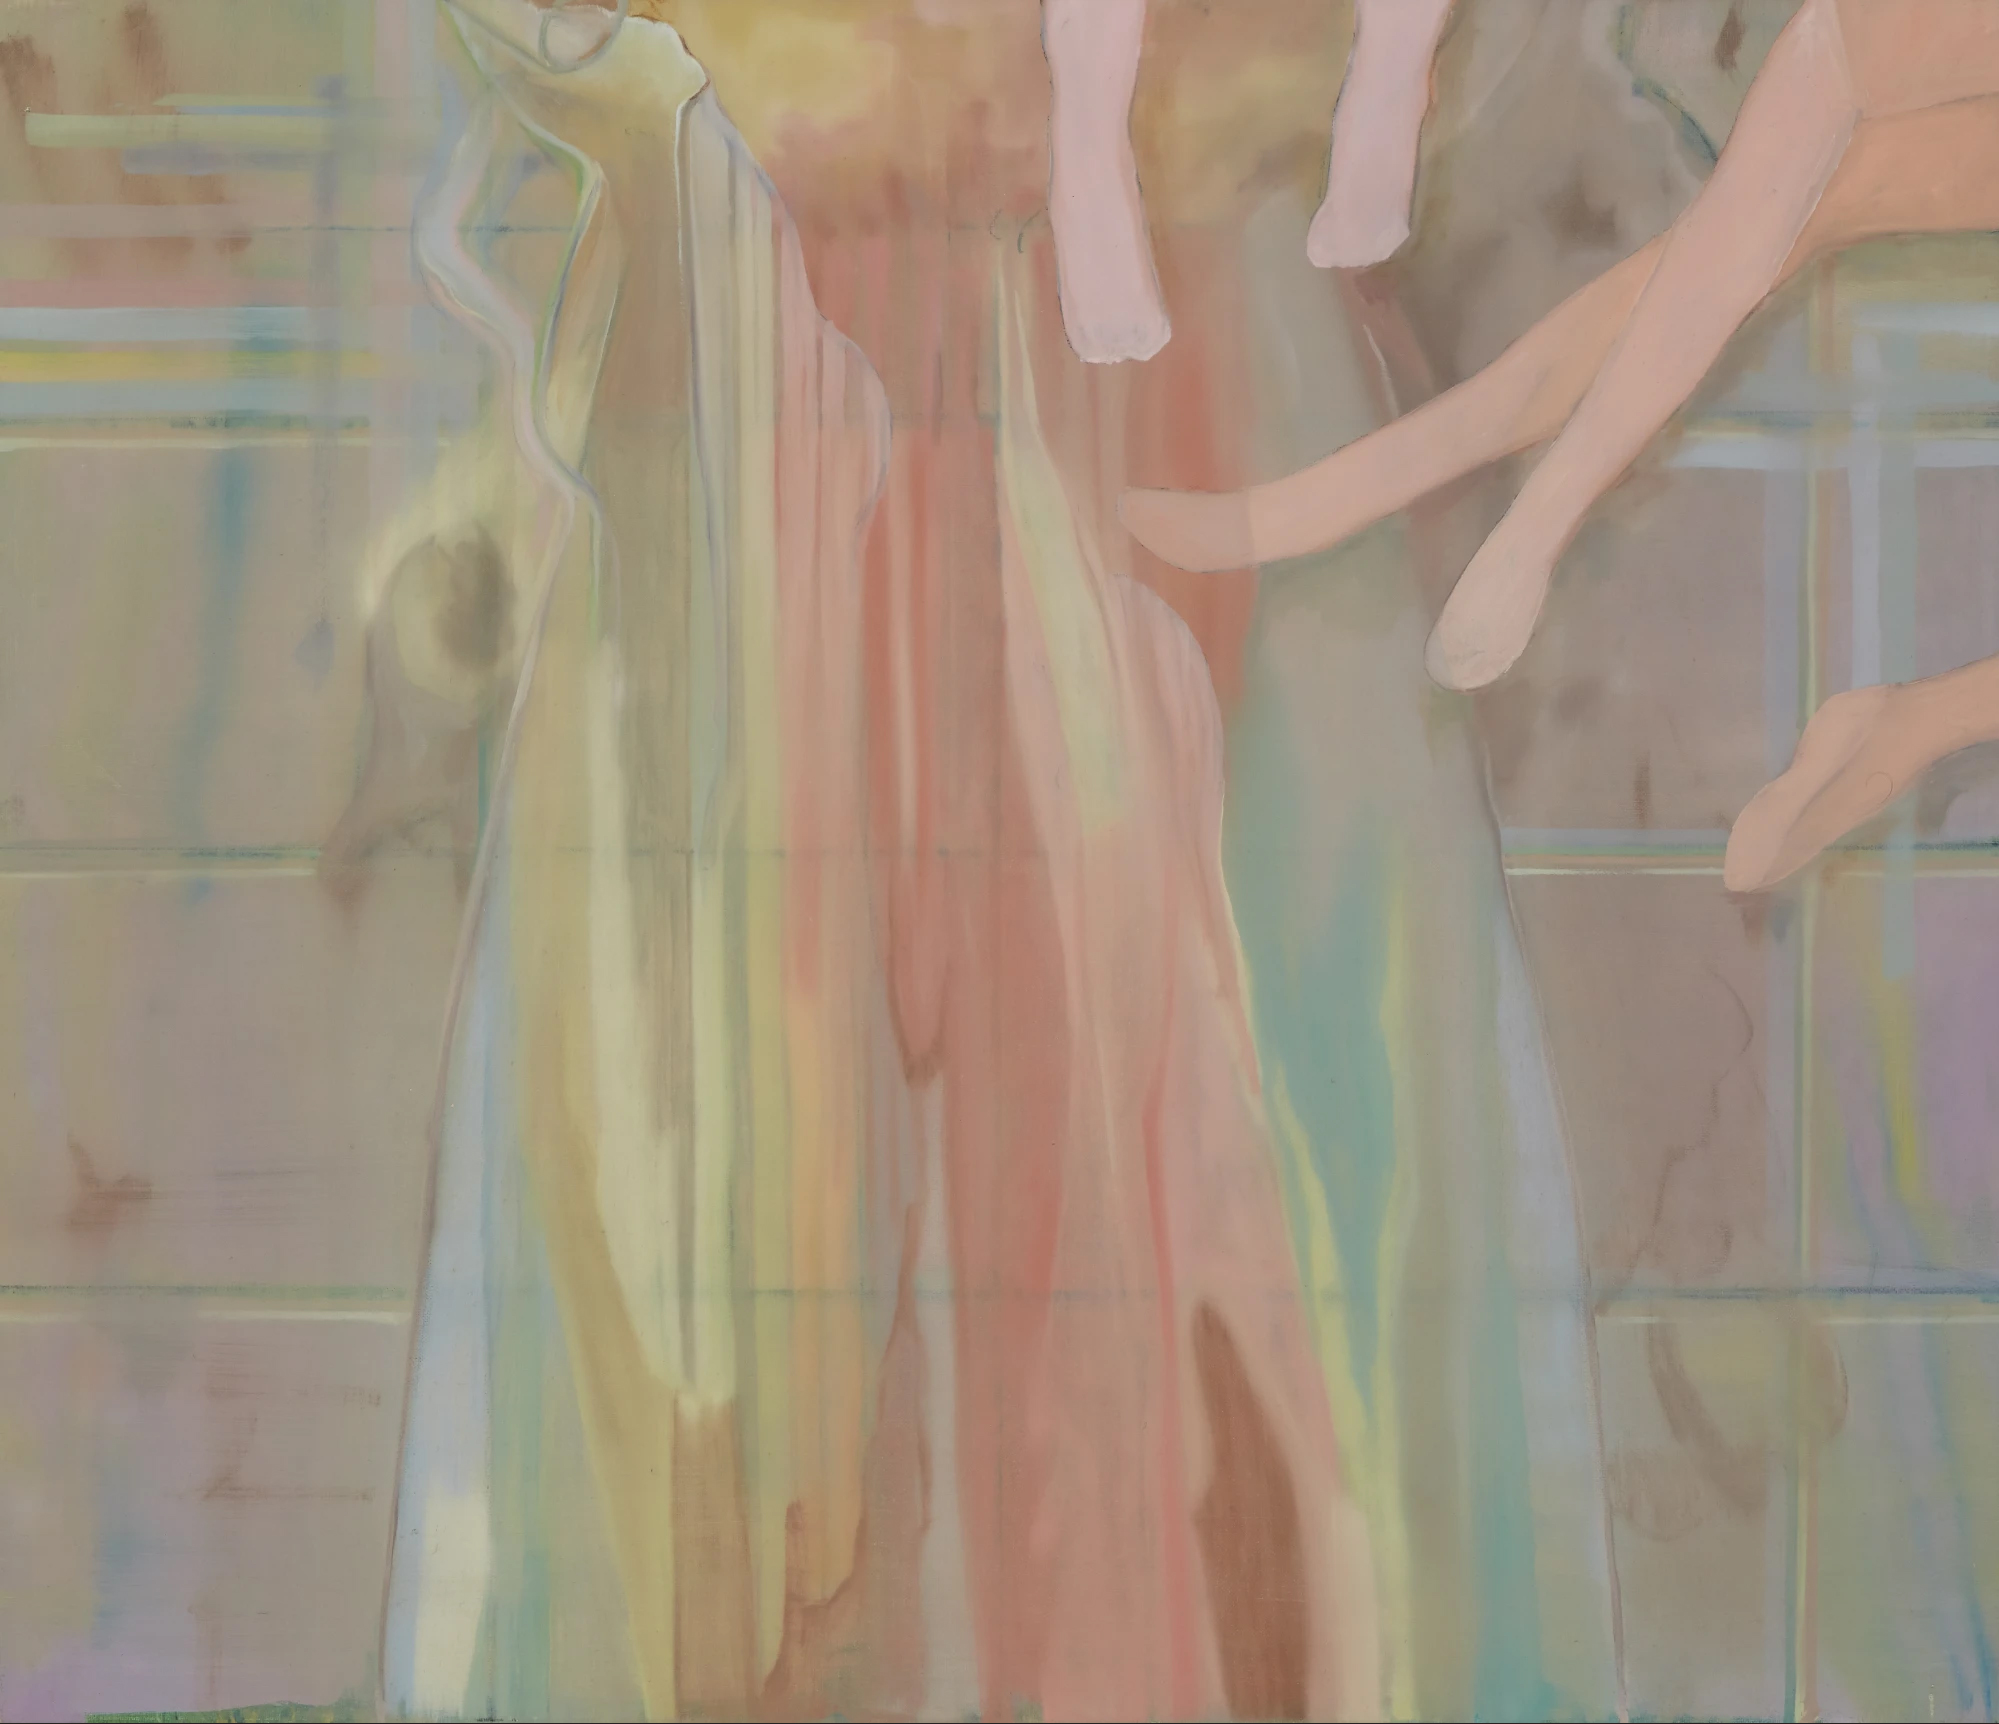 Sonia Shiel, When We Remember, 2021. Oil on canvas, 60 × 70 cm. Courtesy of the Kevin Kavanagh Gallery.